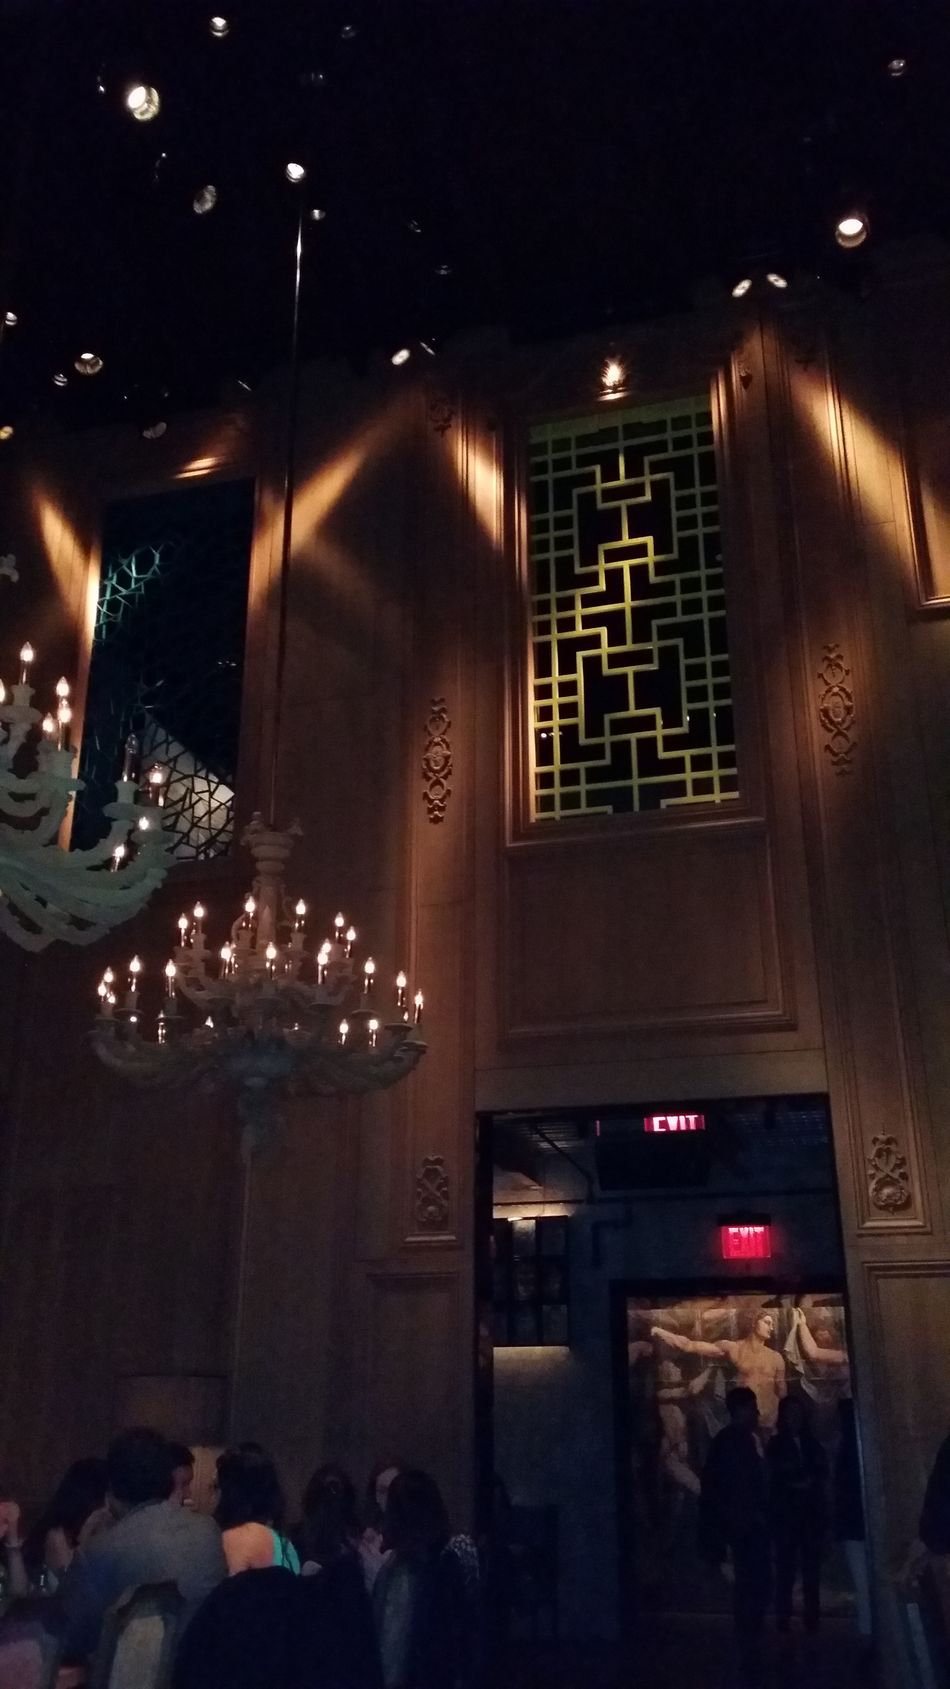 Chandeliers Party Girls Restaurant Hanging Out Date Night